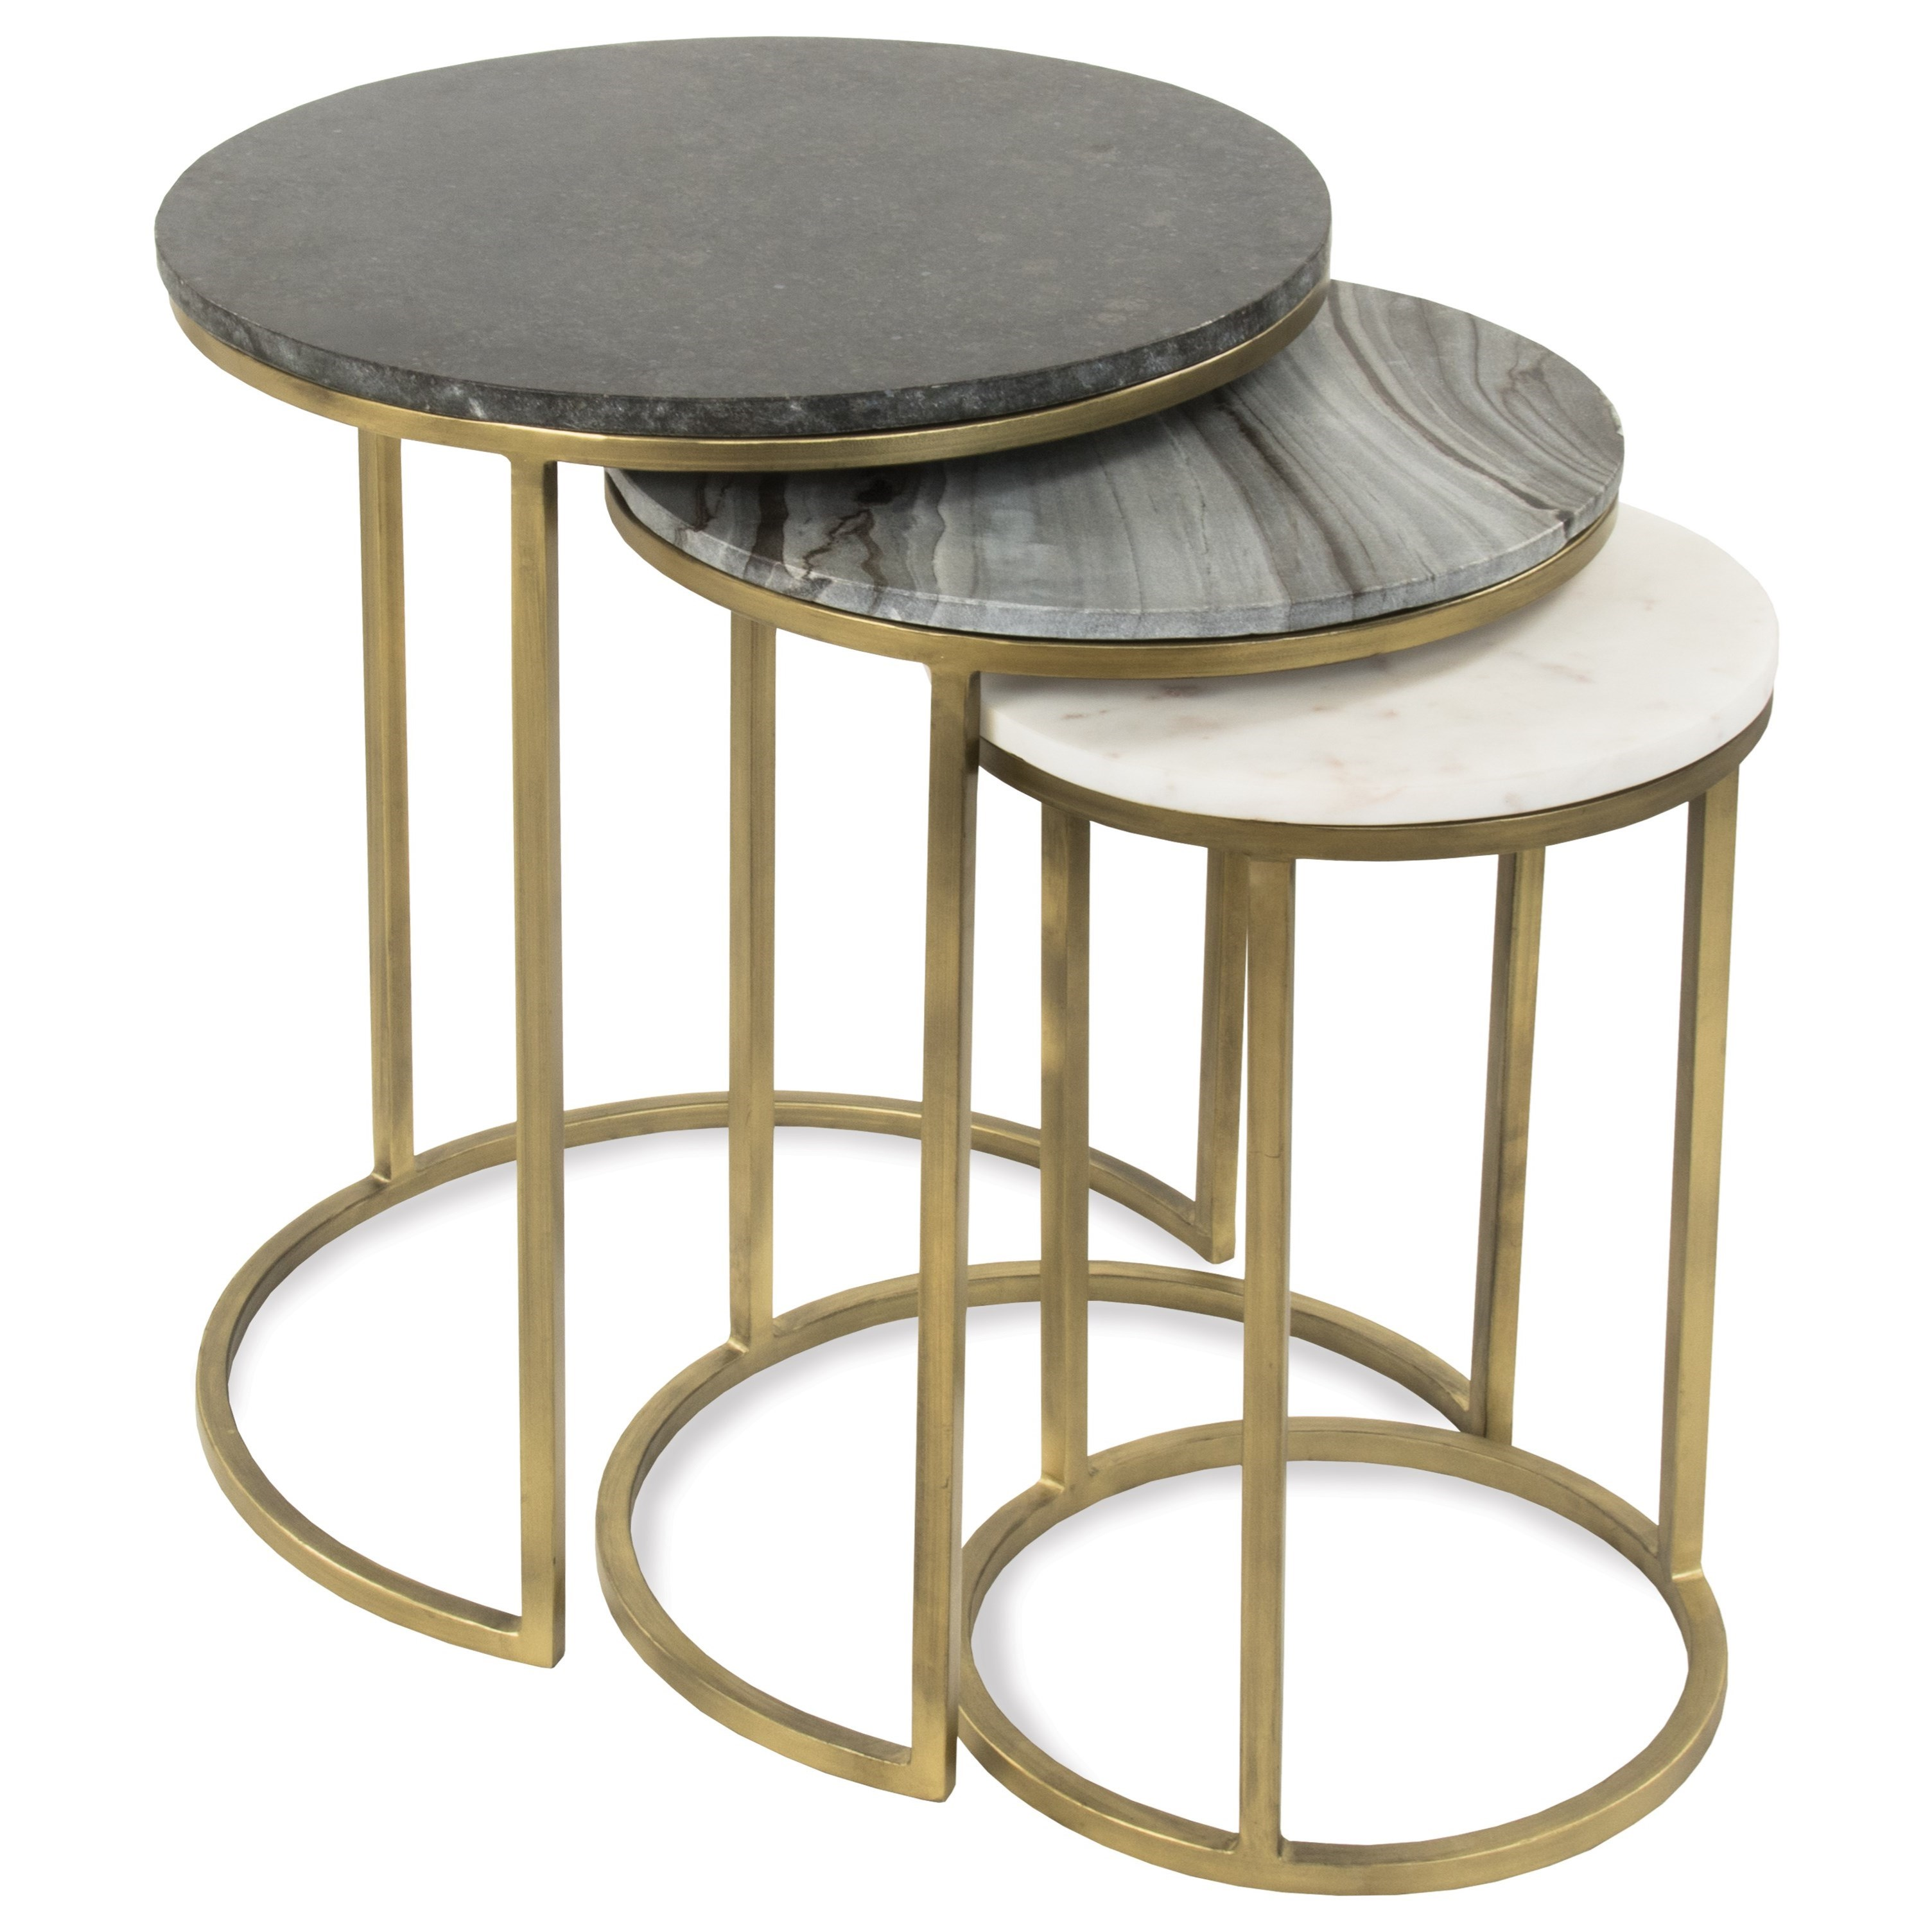 nesting side tables accent small nest metal lacquer table corner square outdoor full size green tiffany lamp wine console with shelves home decor mirrored nightstand target live